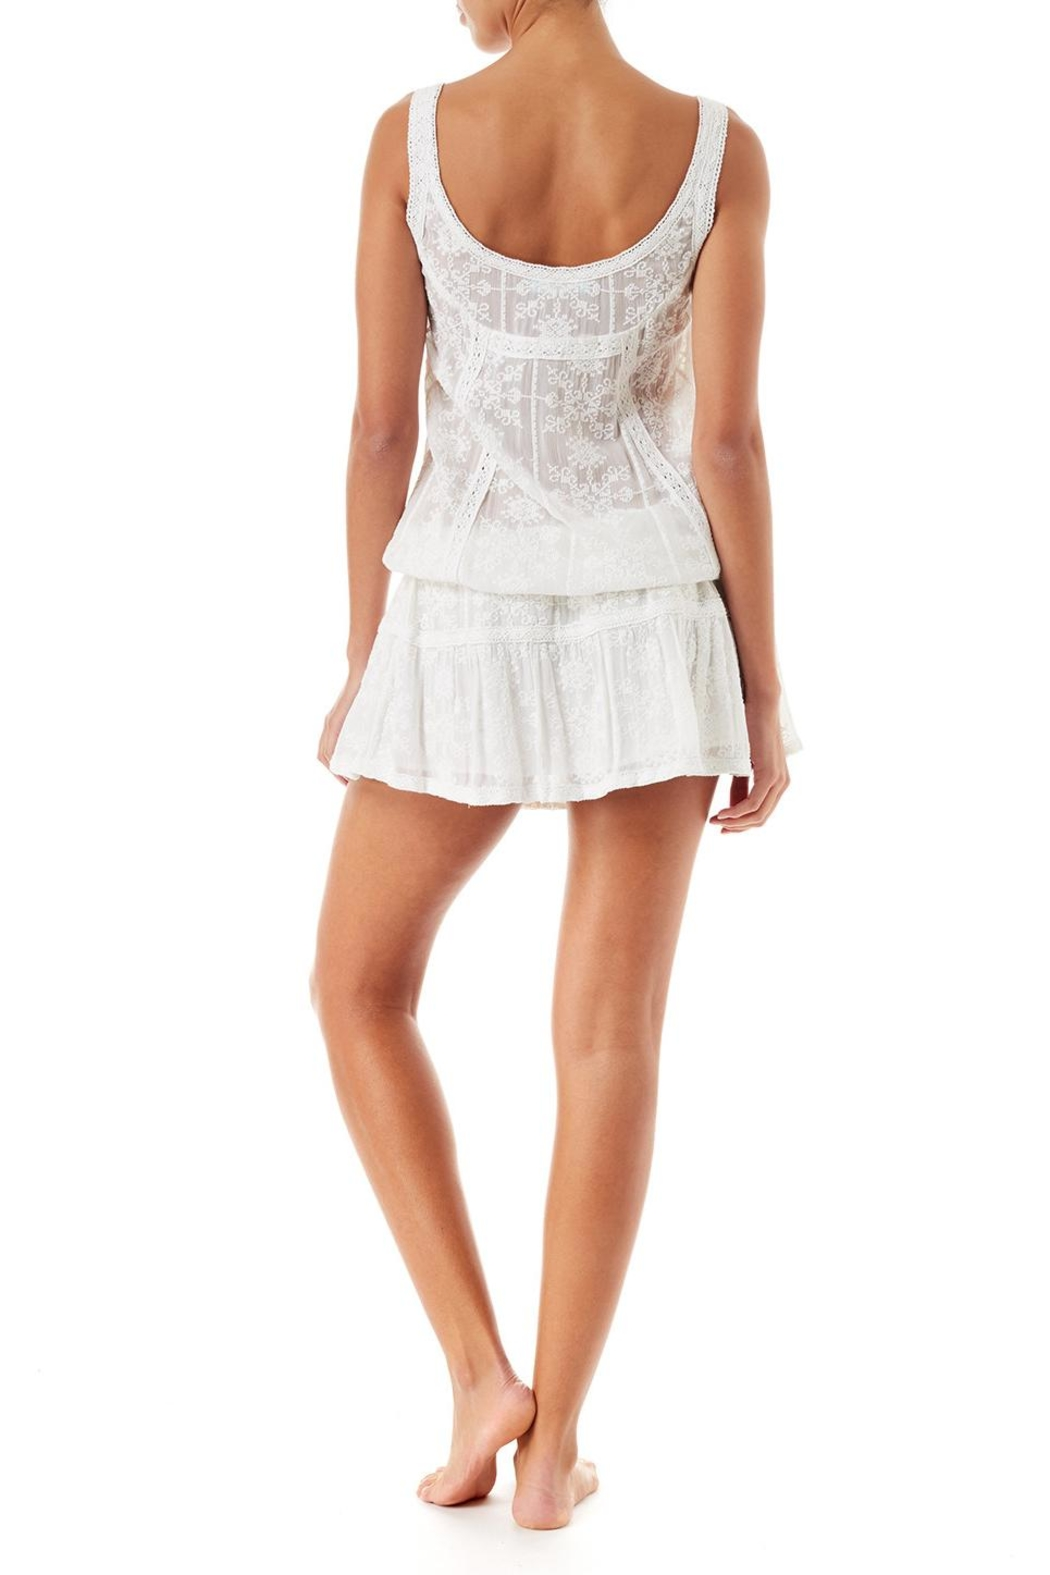 Melissa Odabash Jas Short Dress - Side Cropped Image